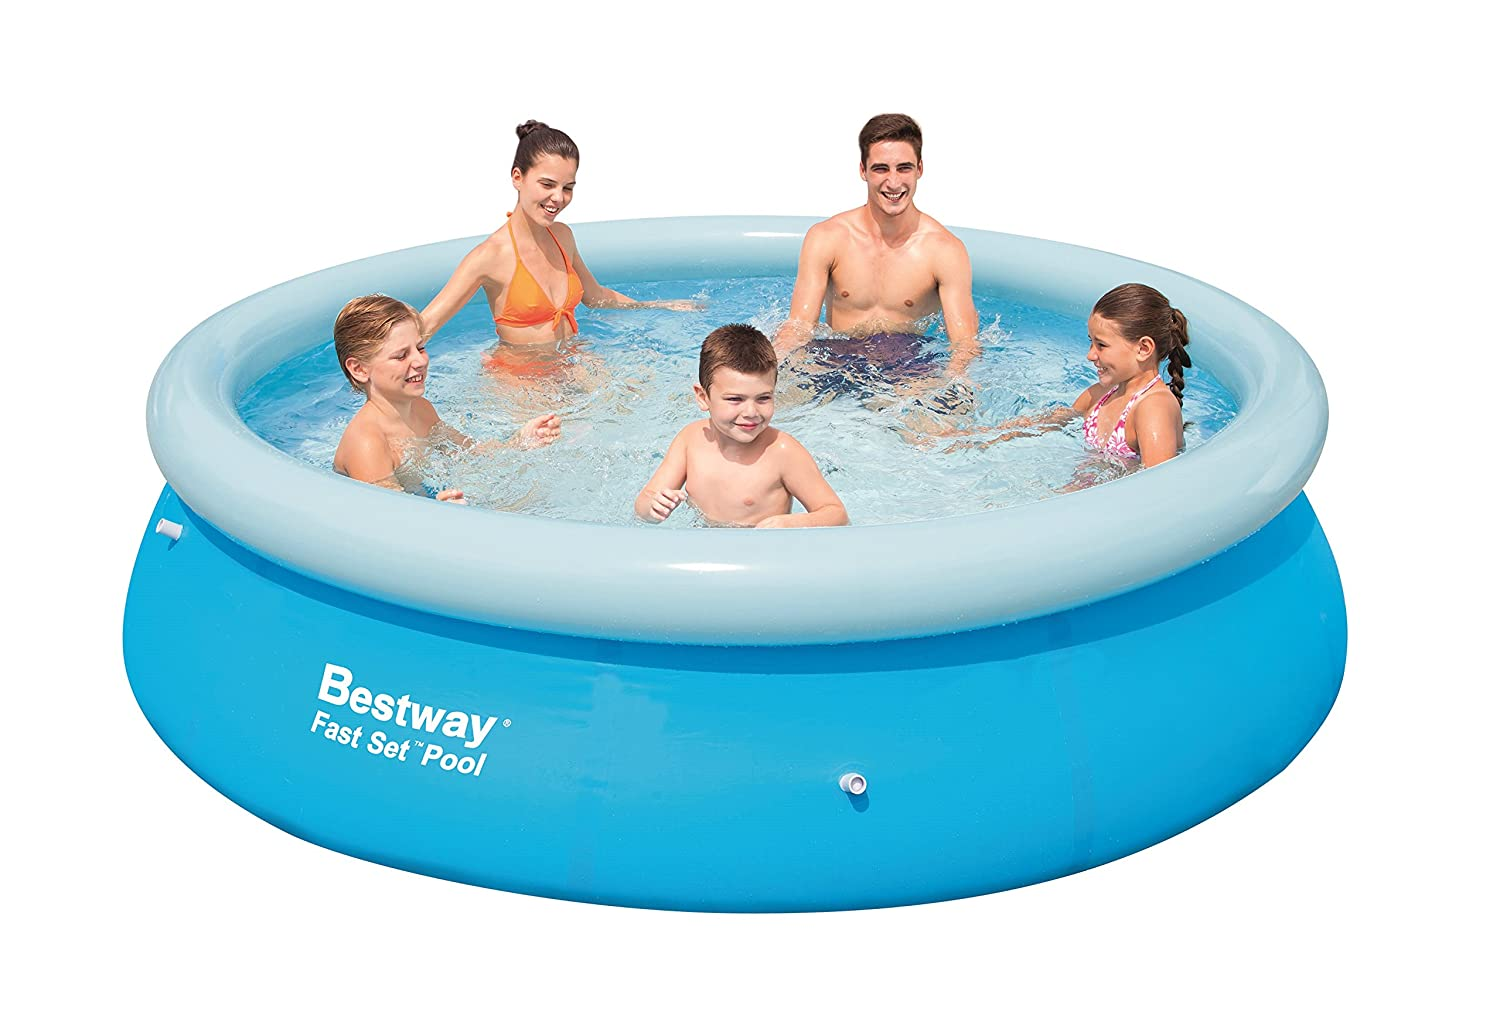 Bestway Fast Set Pool - 10 x 30 Inches Bestway UK (FOB Account) 57307